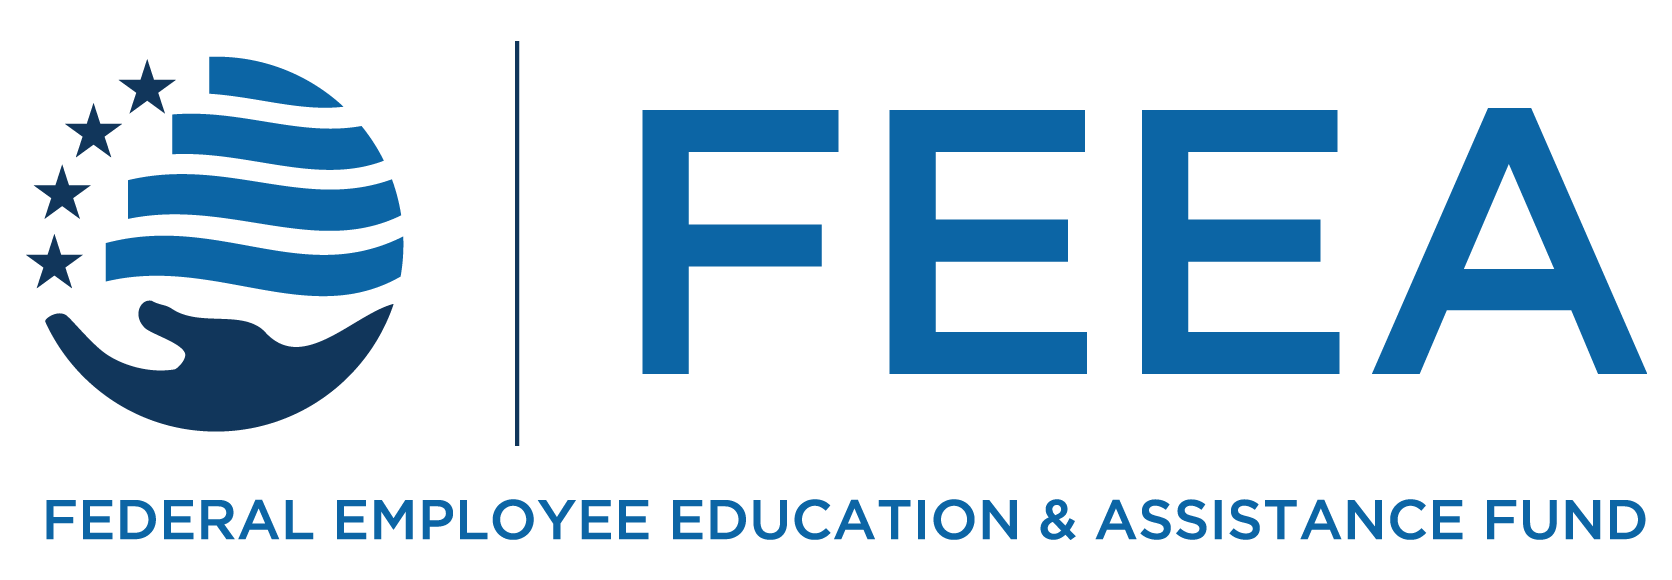 Federal Employee Education & Assistance Fund